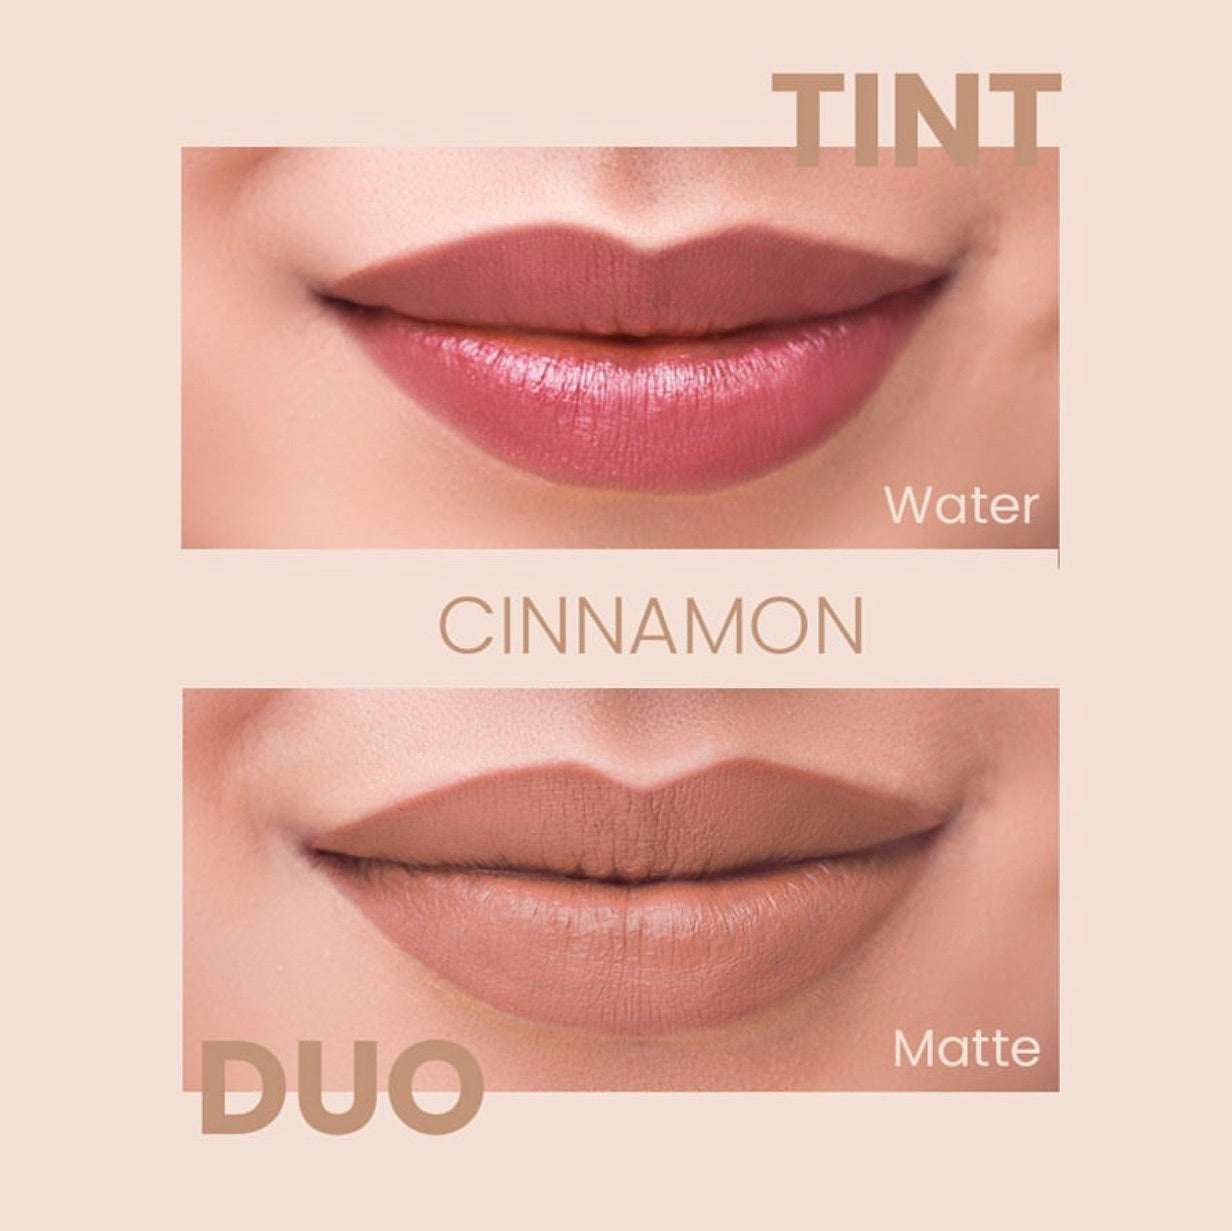 blk cosmetics Multi-Use Tint Duo - Cinnamon